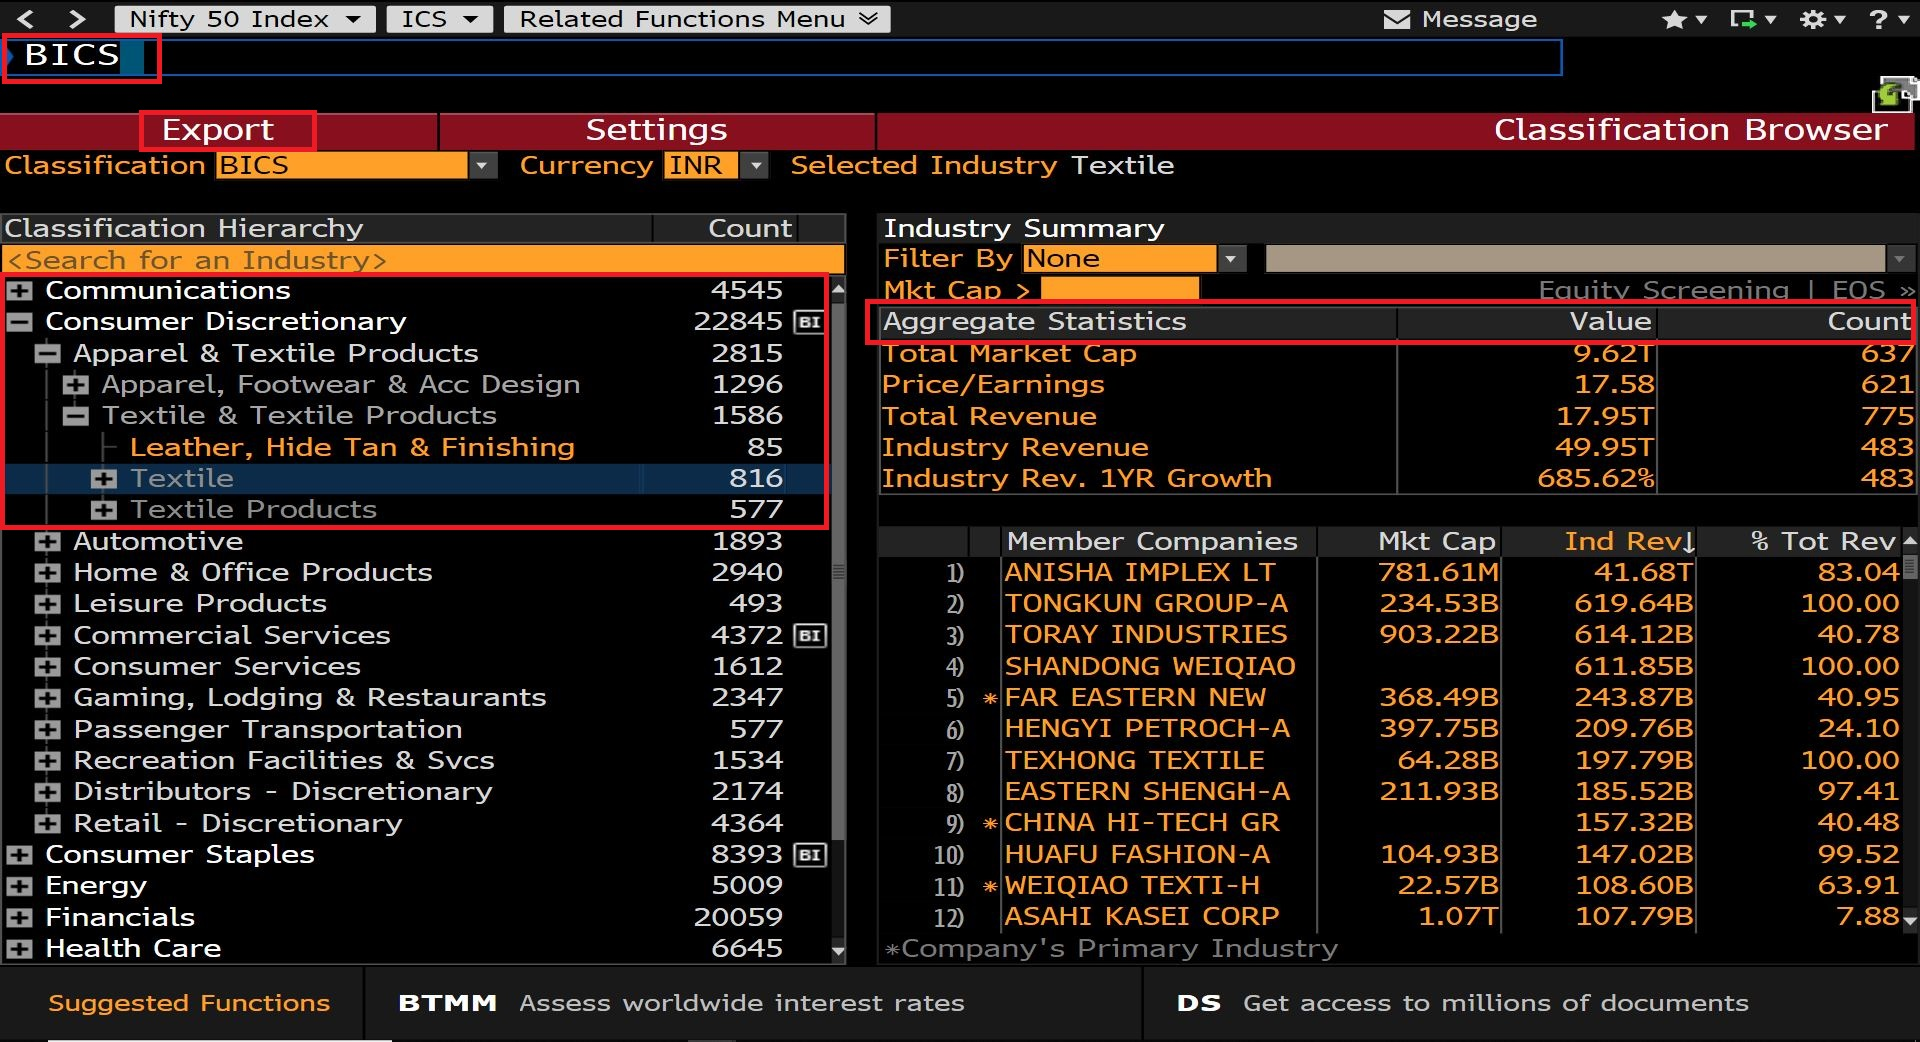 Login to Bloomberg (Available in Library) then Search for BICS and Select Consumer Discretionary and Click on Apparel, Textile Products and Click on Textile